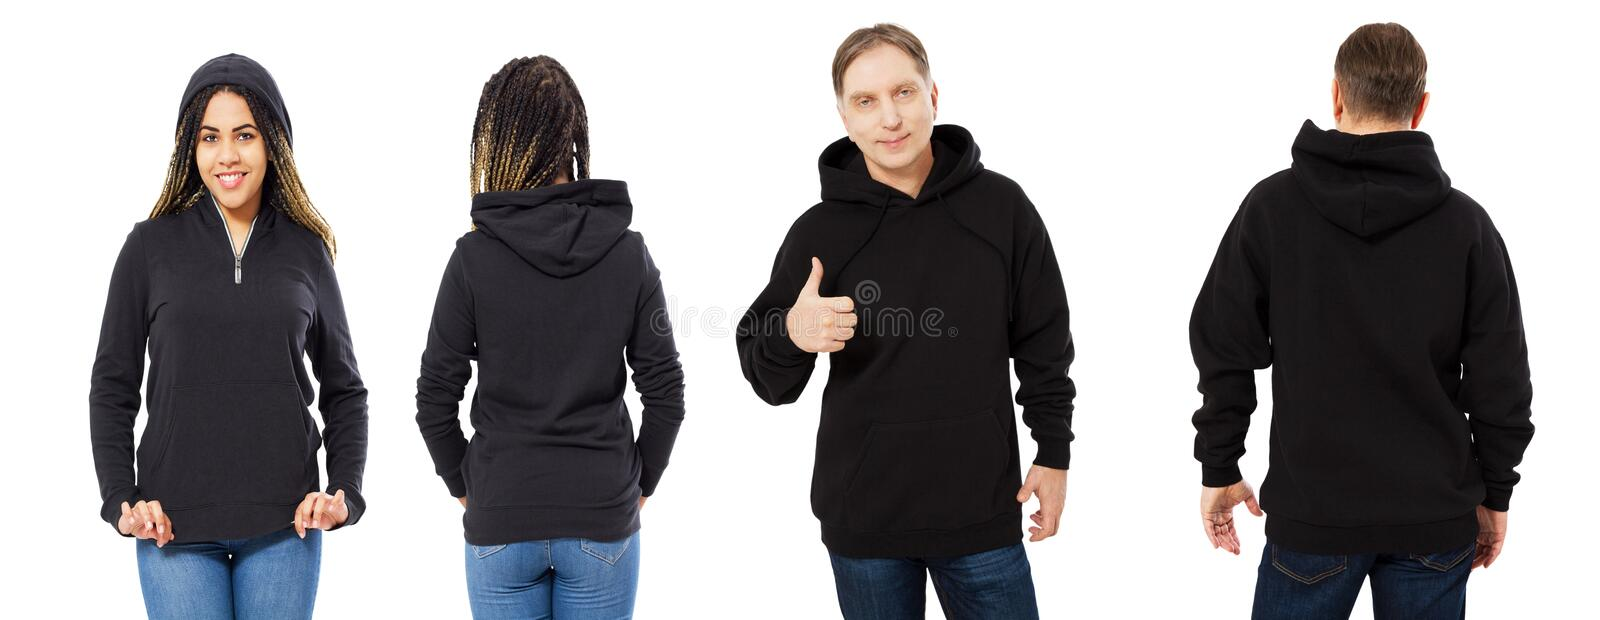 Black beautiful woman and middle-aged man in black hoodie mock up isolated on white background royalty free stock image